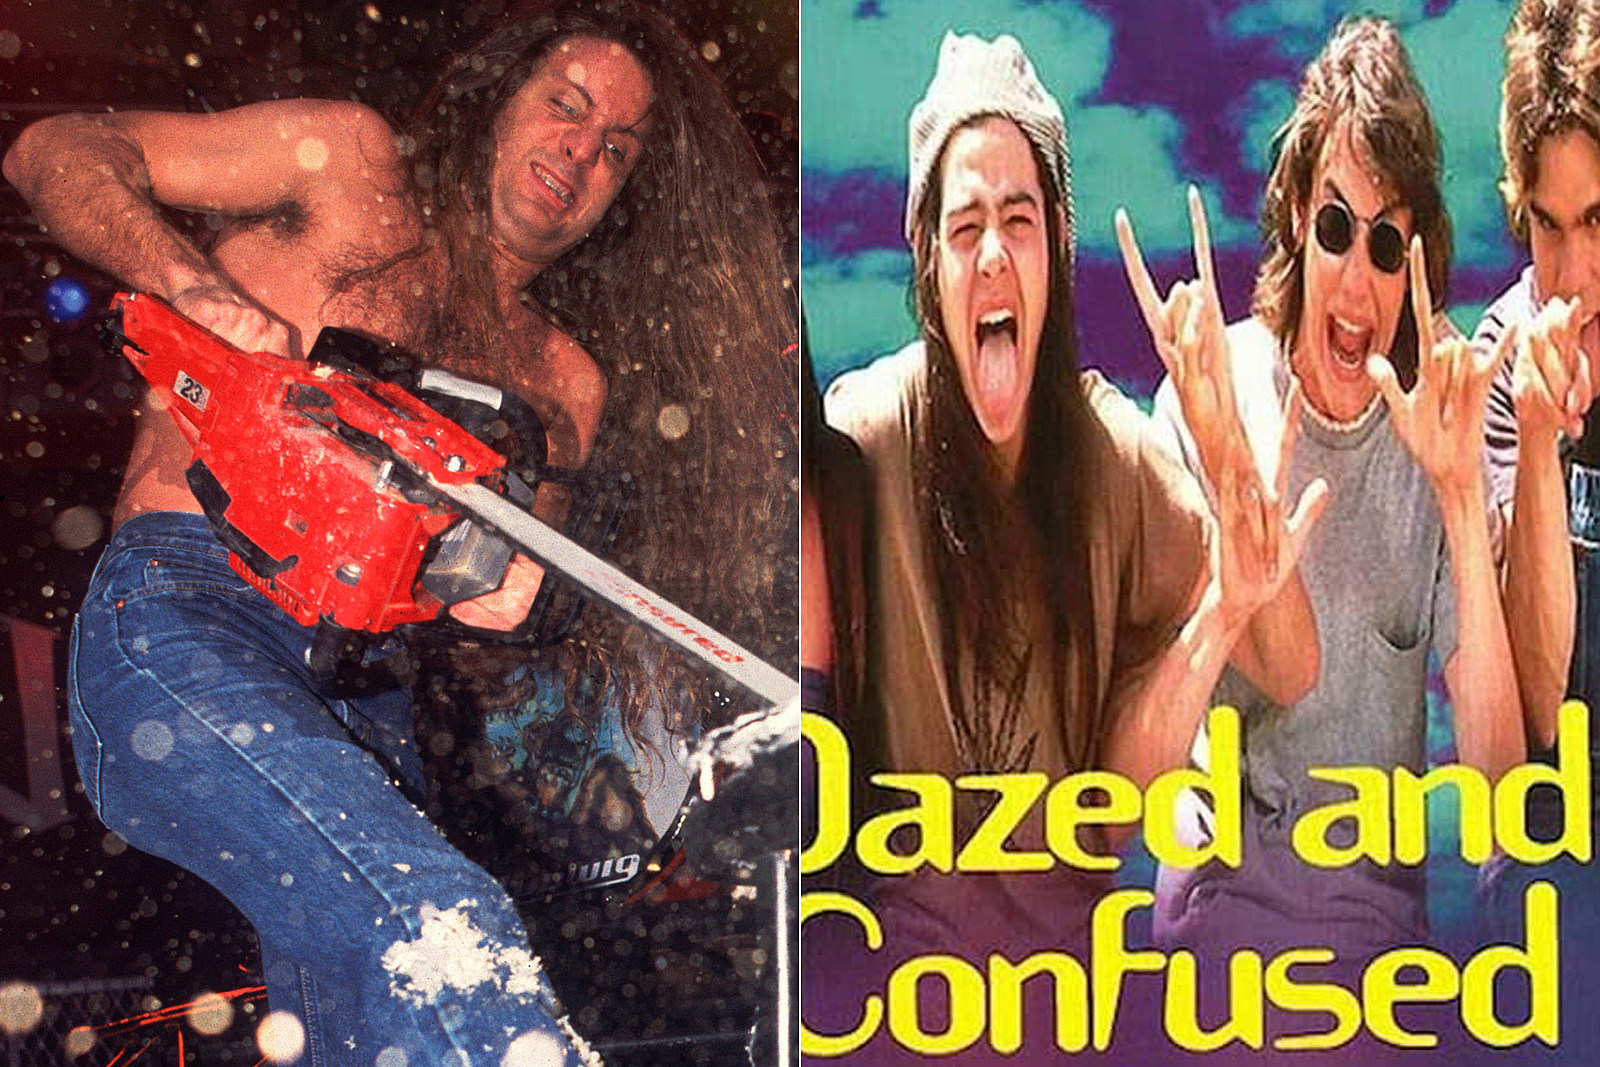 The Battle Over Jackyl and the 'Dazed and Confused' Soundtrack